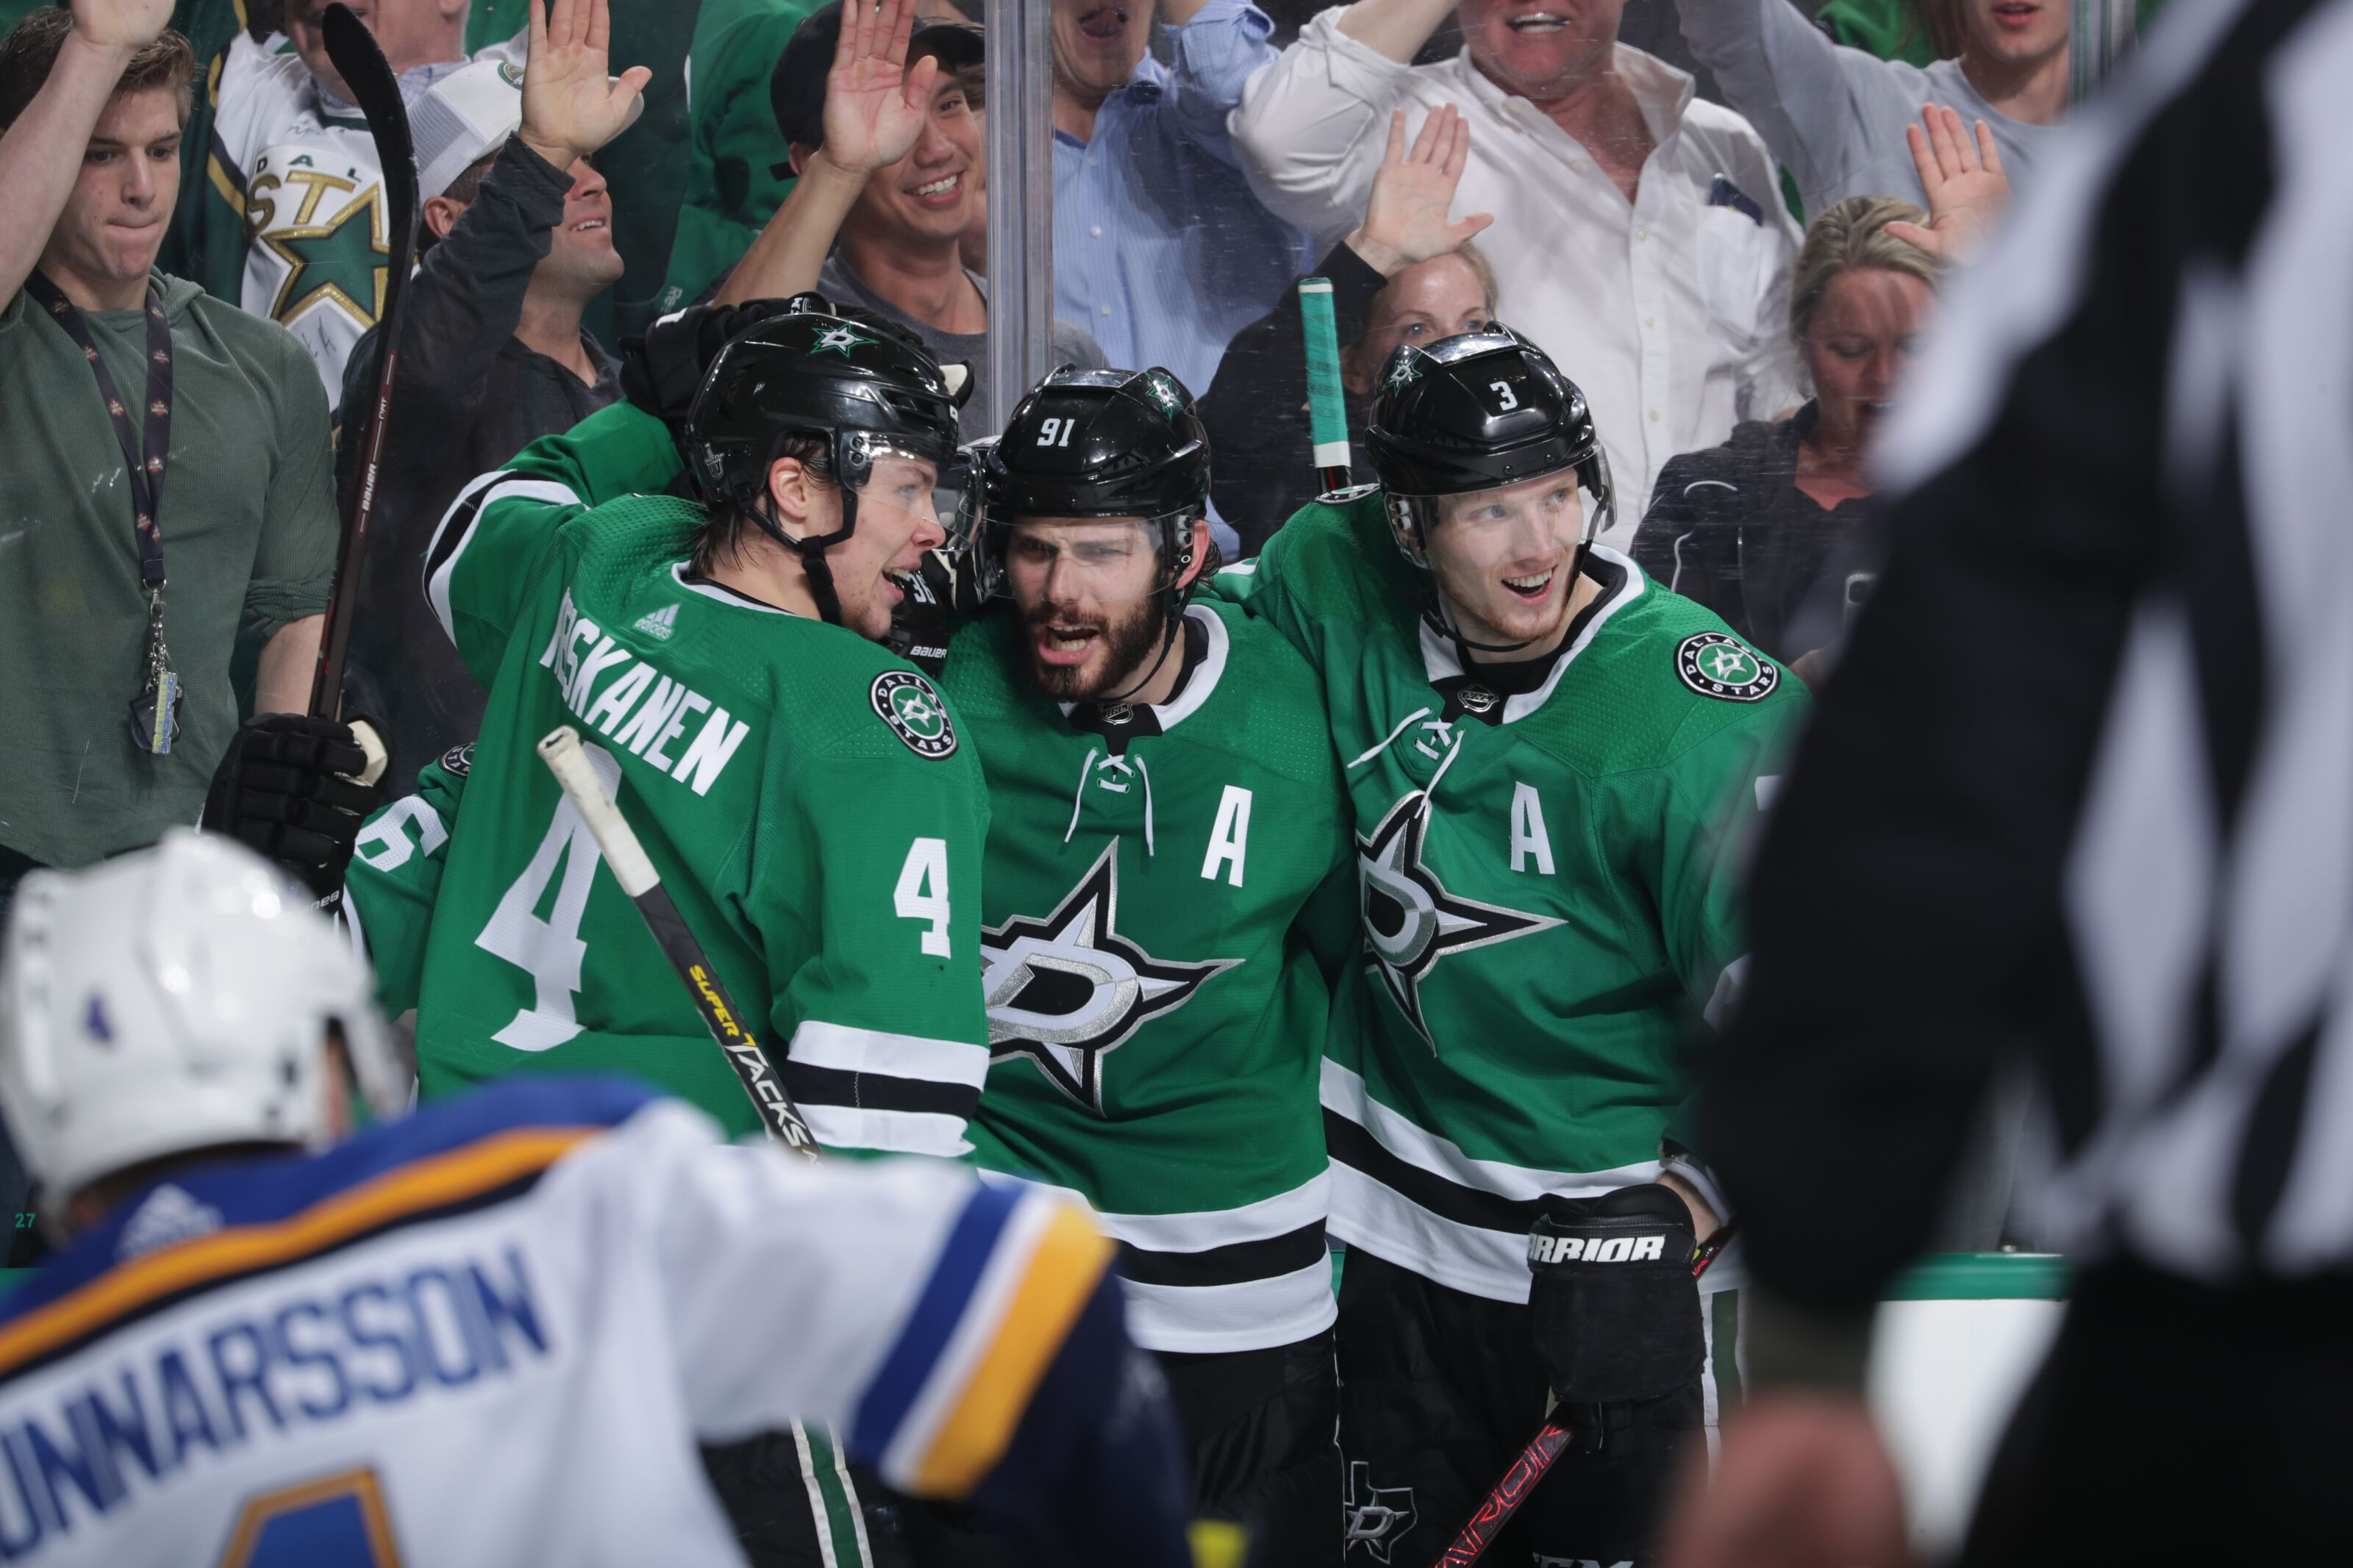 Dallas Stars: John Klingberg, Miro Heiskanen Crack Top 20 Defenders List